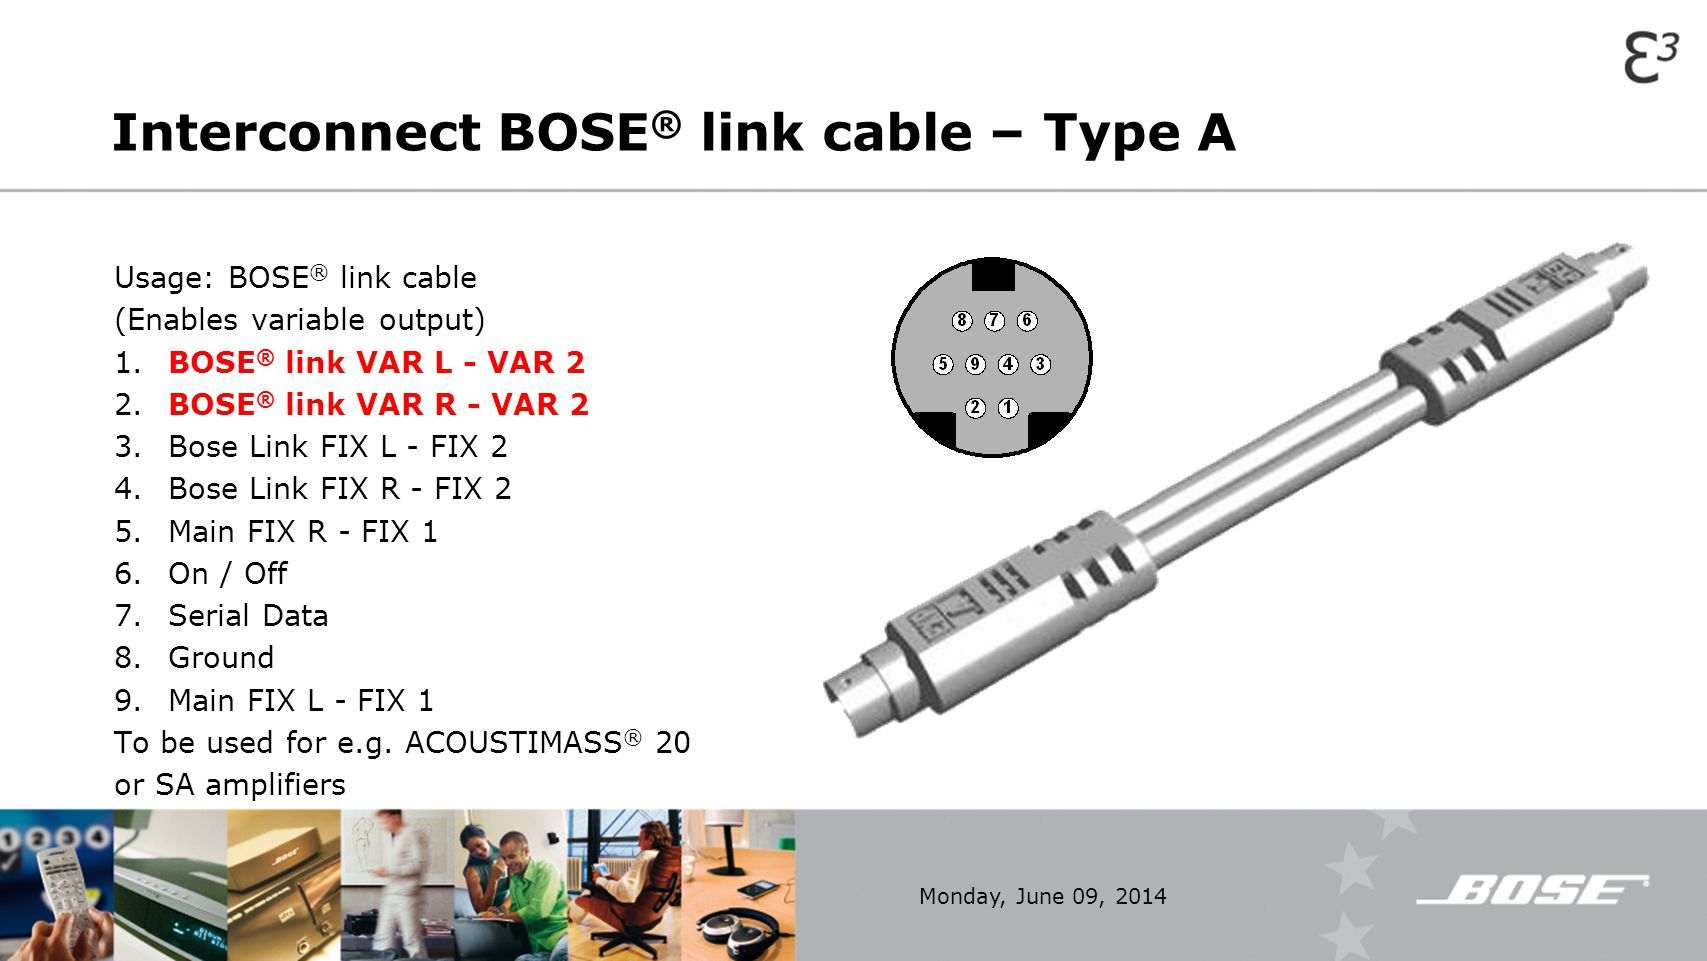 Interconnect BOSE® link cable – Type A